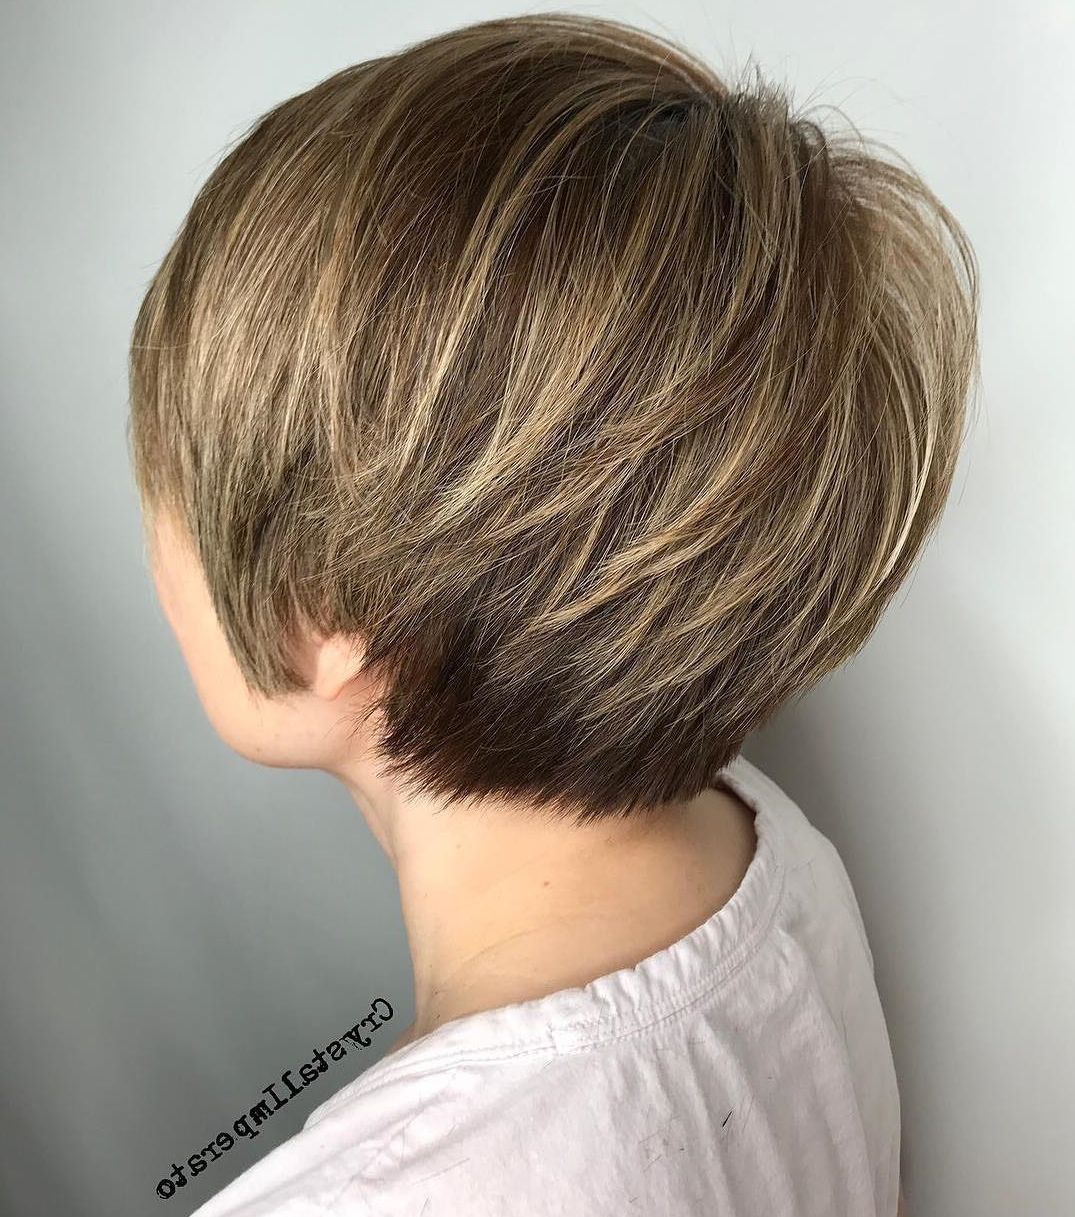 50 Hottest Pixie Cut Hairstyles In 2019 Regarding Trendy Pixie Haircuts With Vibrant Highlights (View 12 of 20)